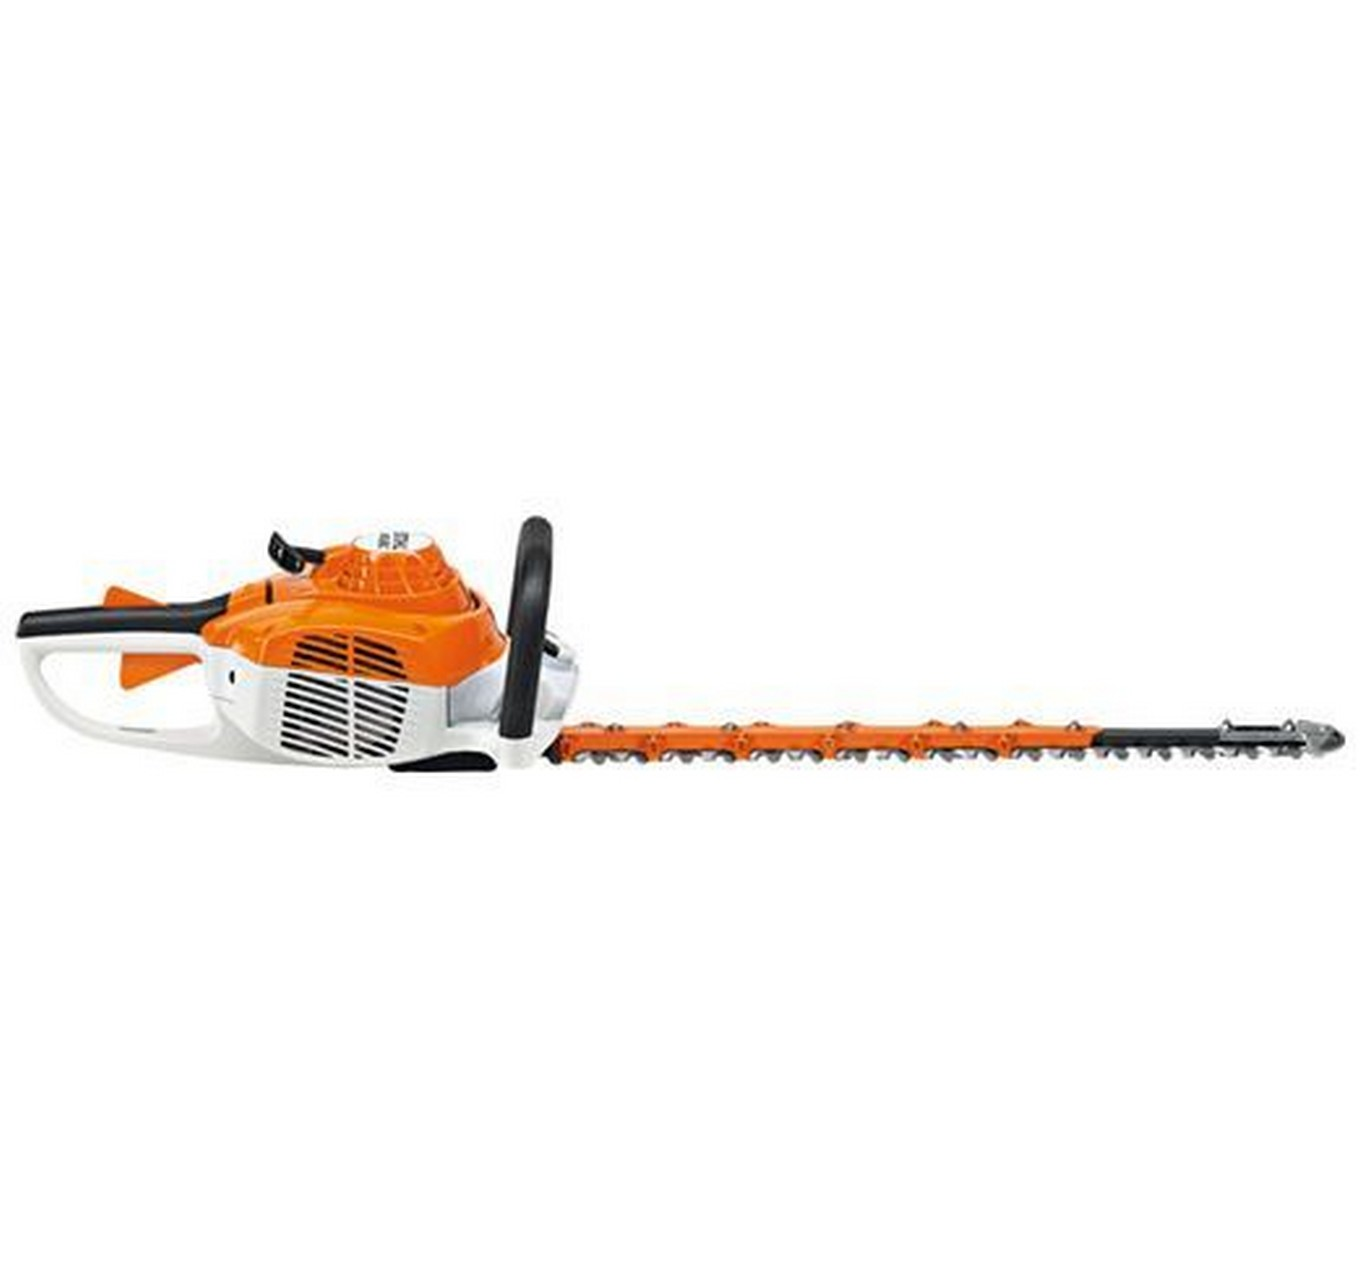 HS 56 C-E Hedge Trimmer 24